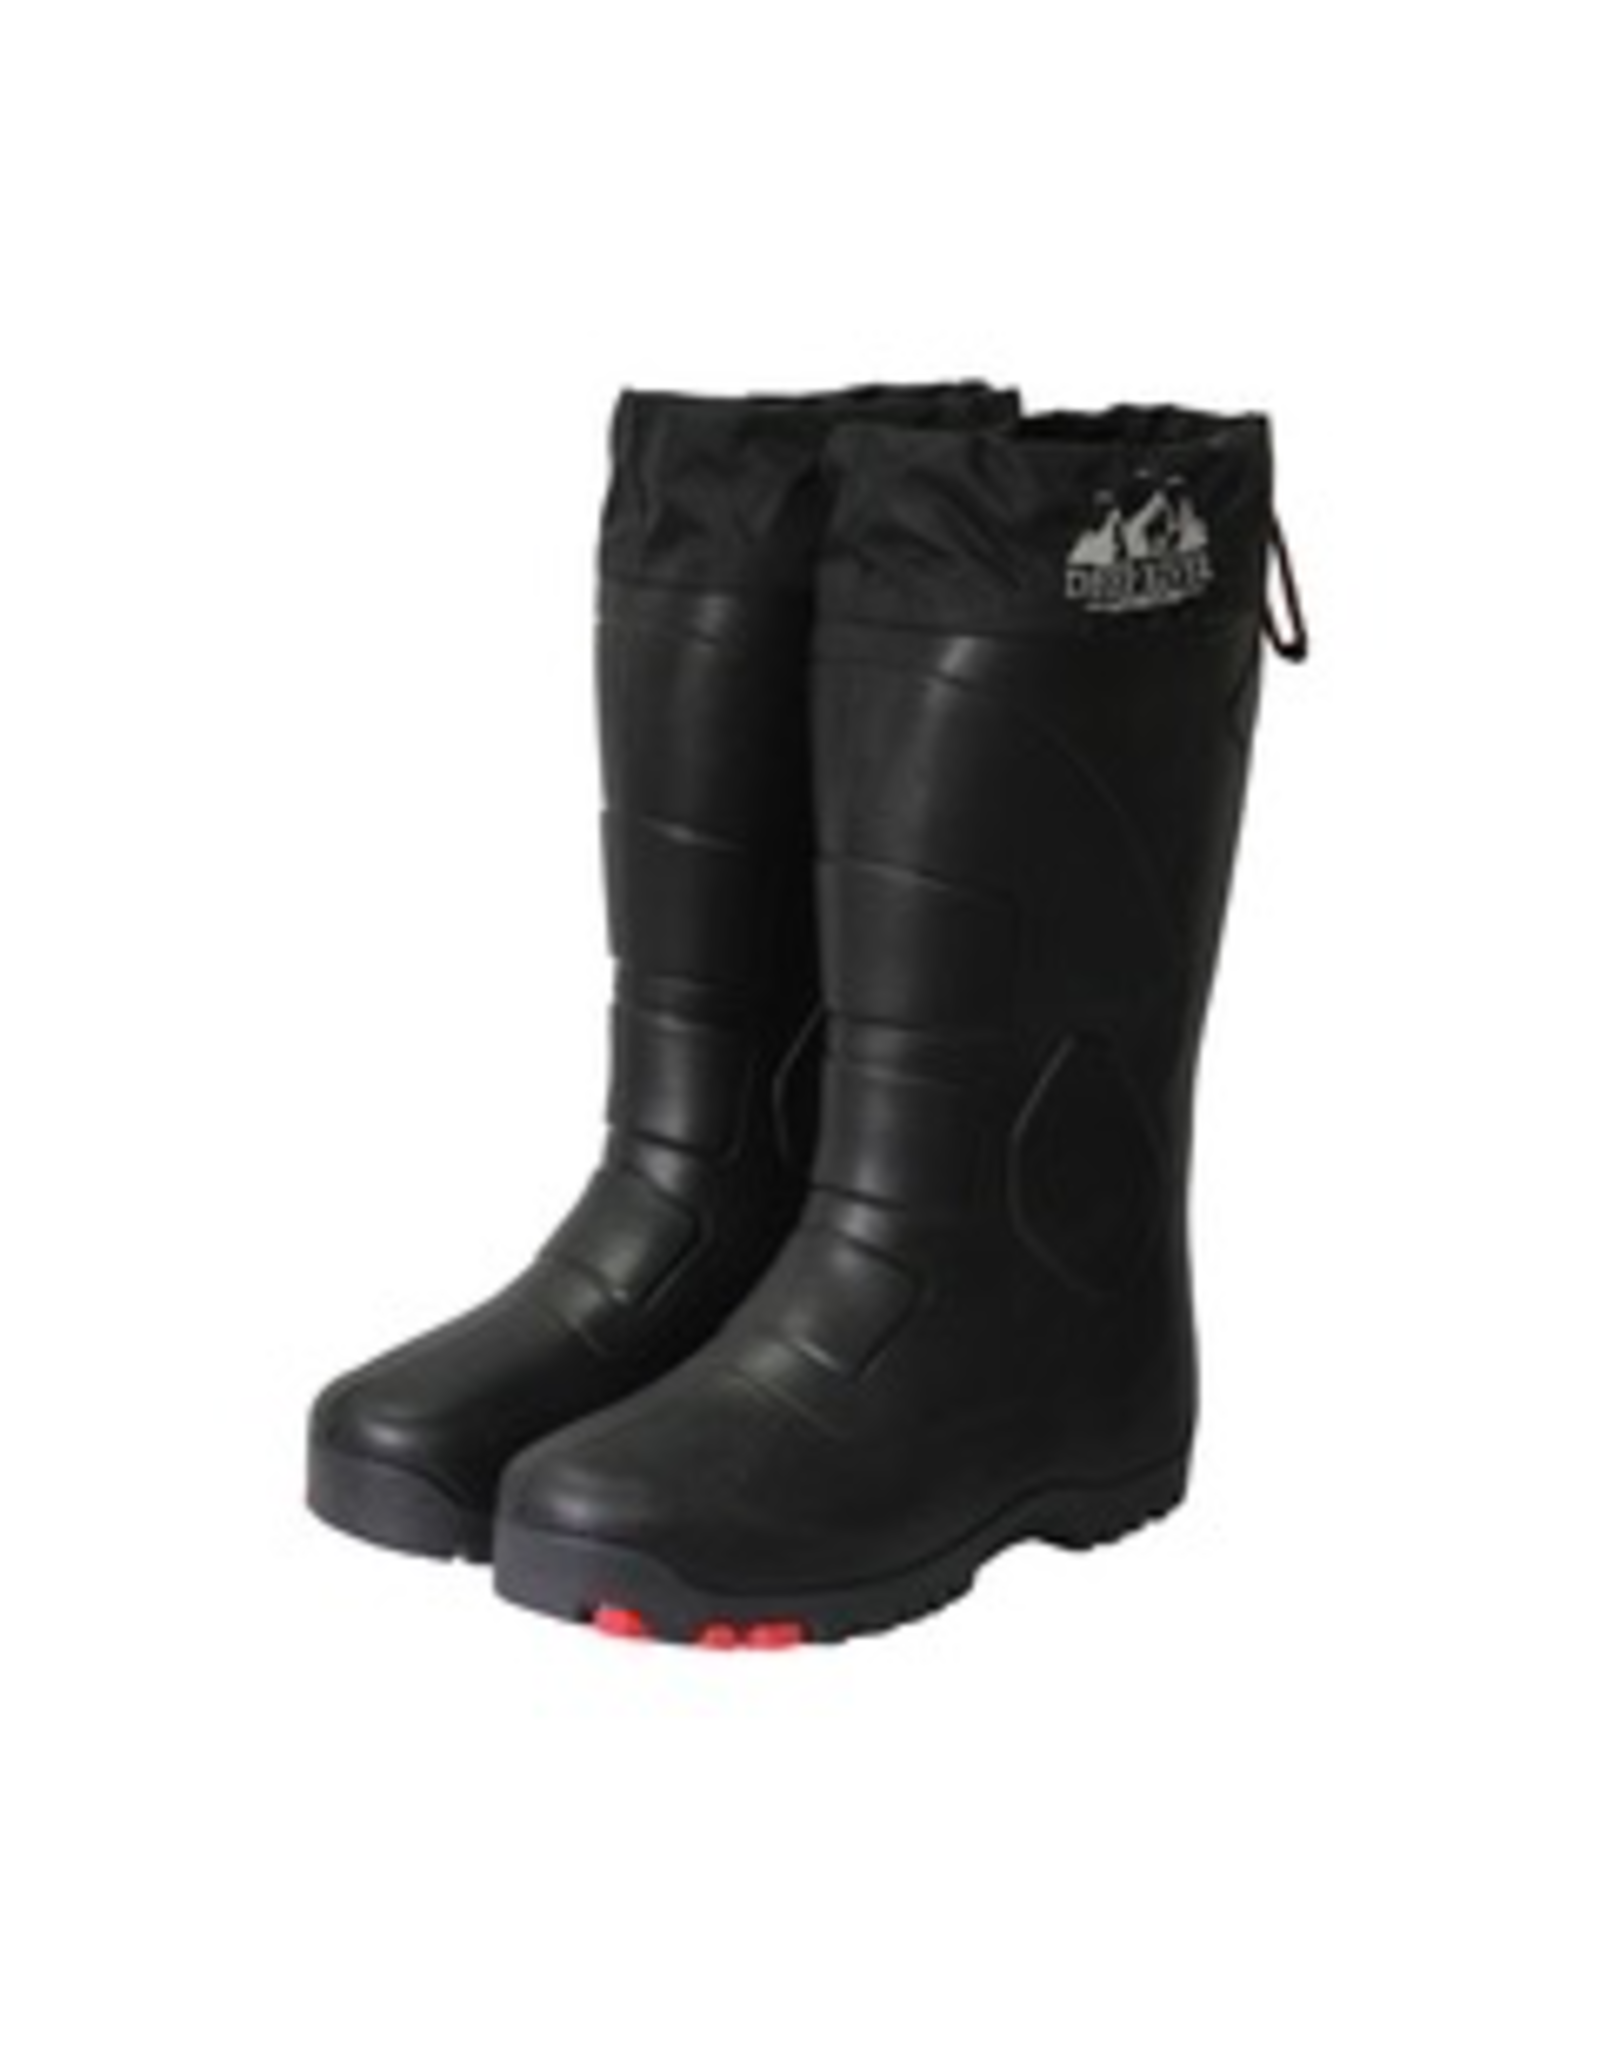 GKS GKS Deep River EVA Boots with Integrated spikes